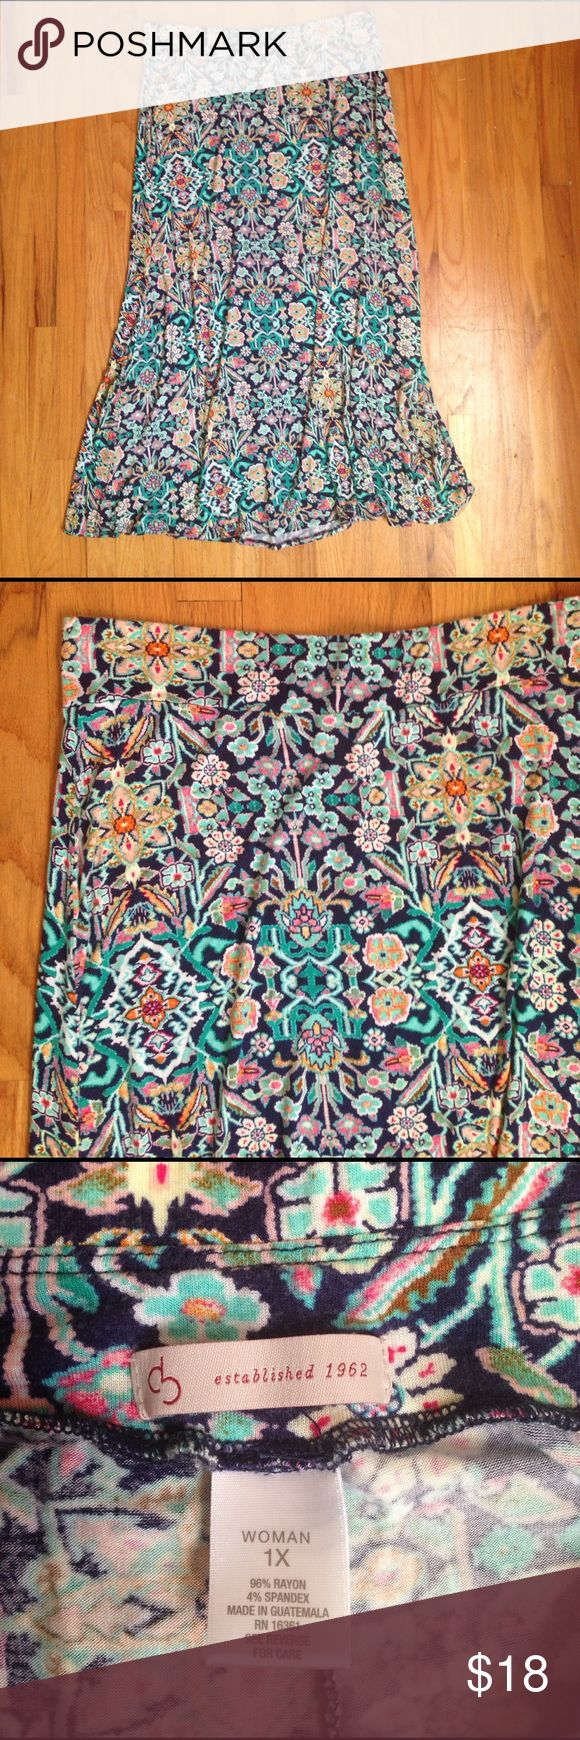 """Printed Maxi Skirt Printed Maxi Skirt. Abstract floral design. 96% rayon, 4% spandex. Covered Elastic waistband. Unstretched, the waistband is approx 18"""" across laying flat. Length is 37"""". Dress Barn Skirts Maxi"""